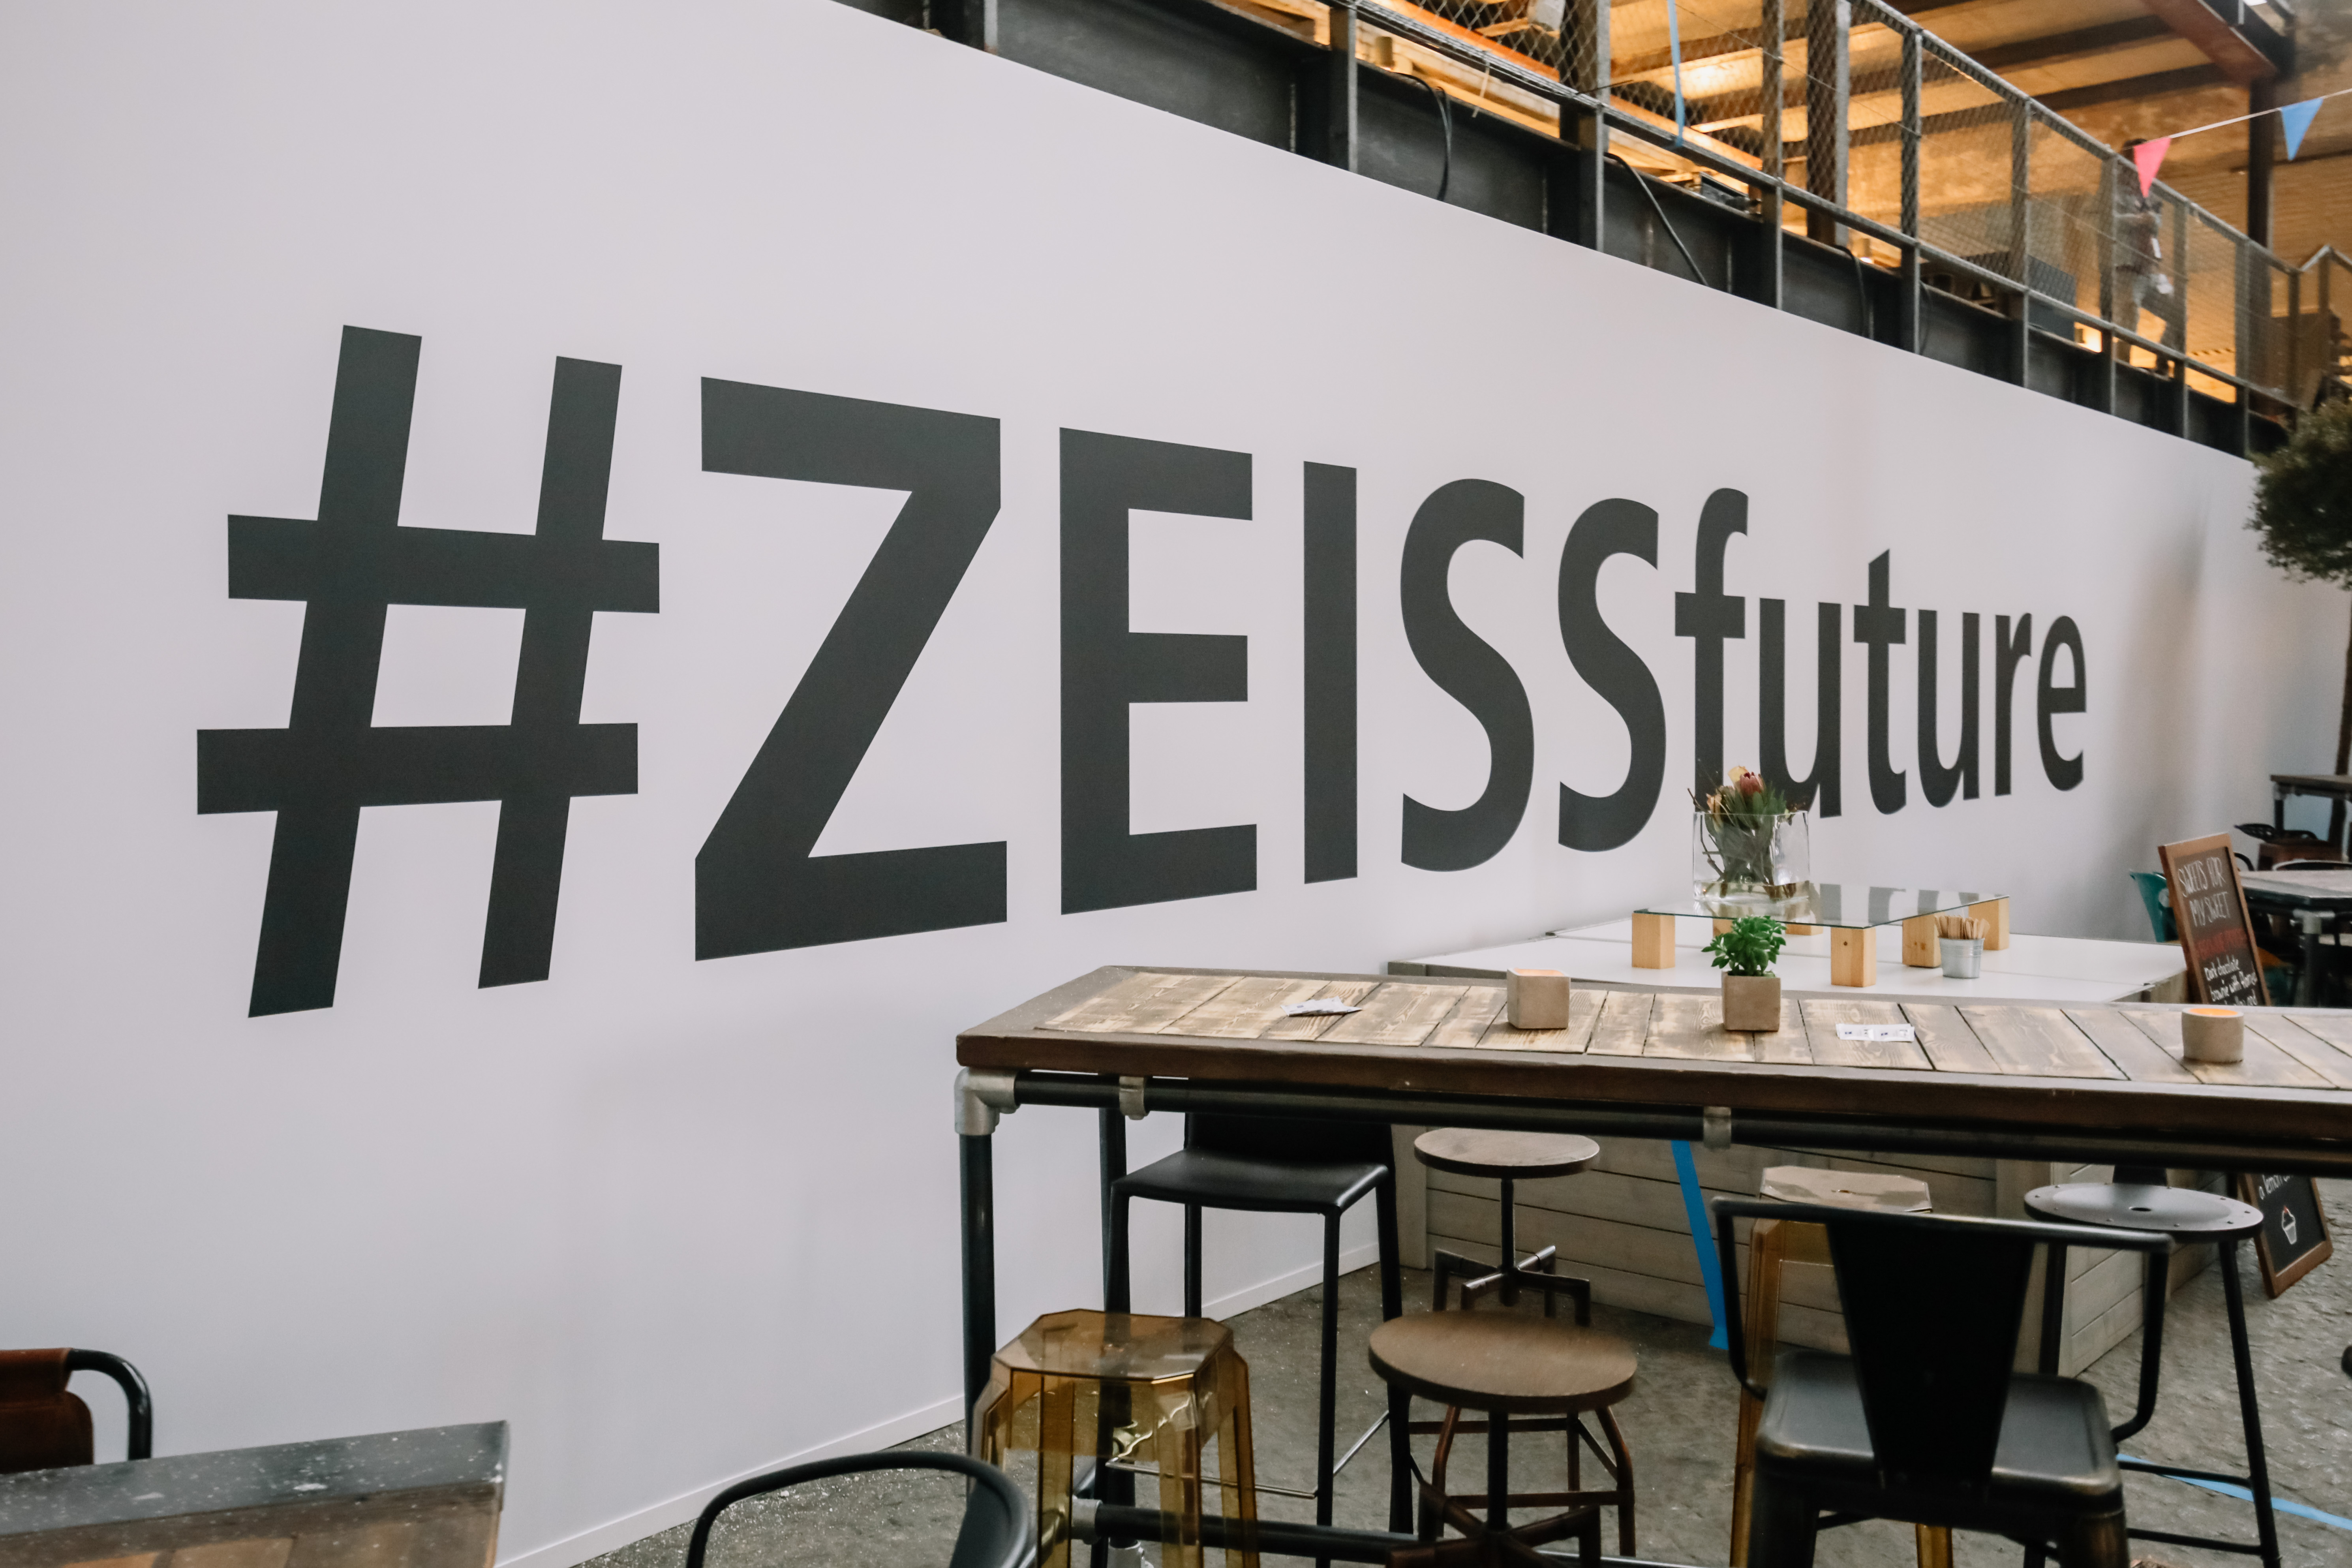 #Zeissfuture: lo sguardo di Zeiss per il futuro, alessia milanese, thechilicool, fashion blog, lifestyle blog